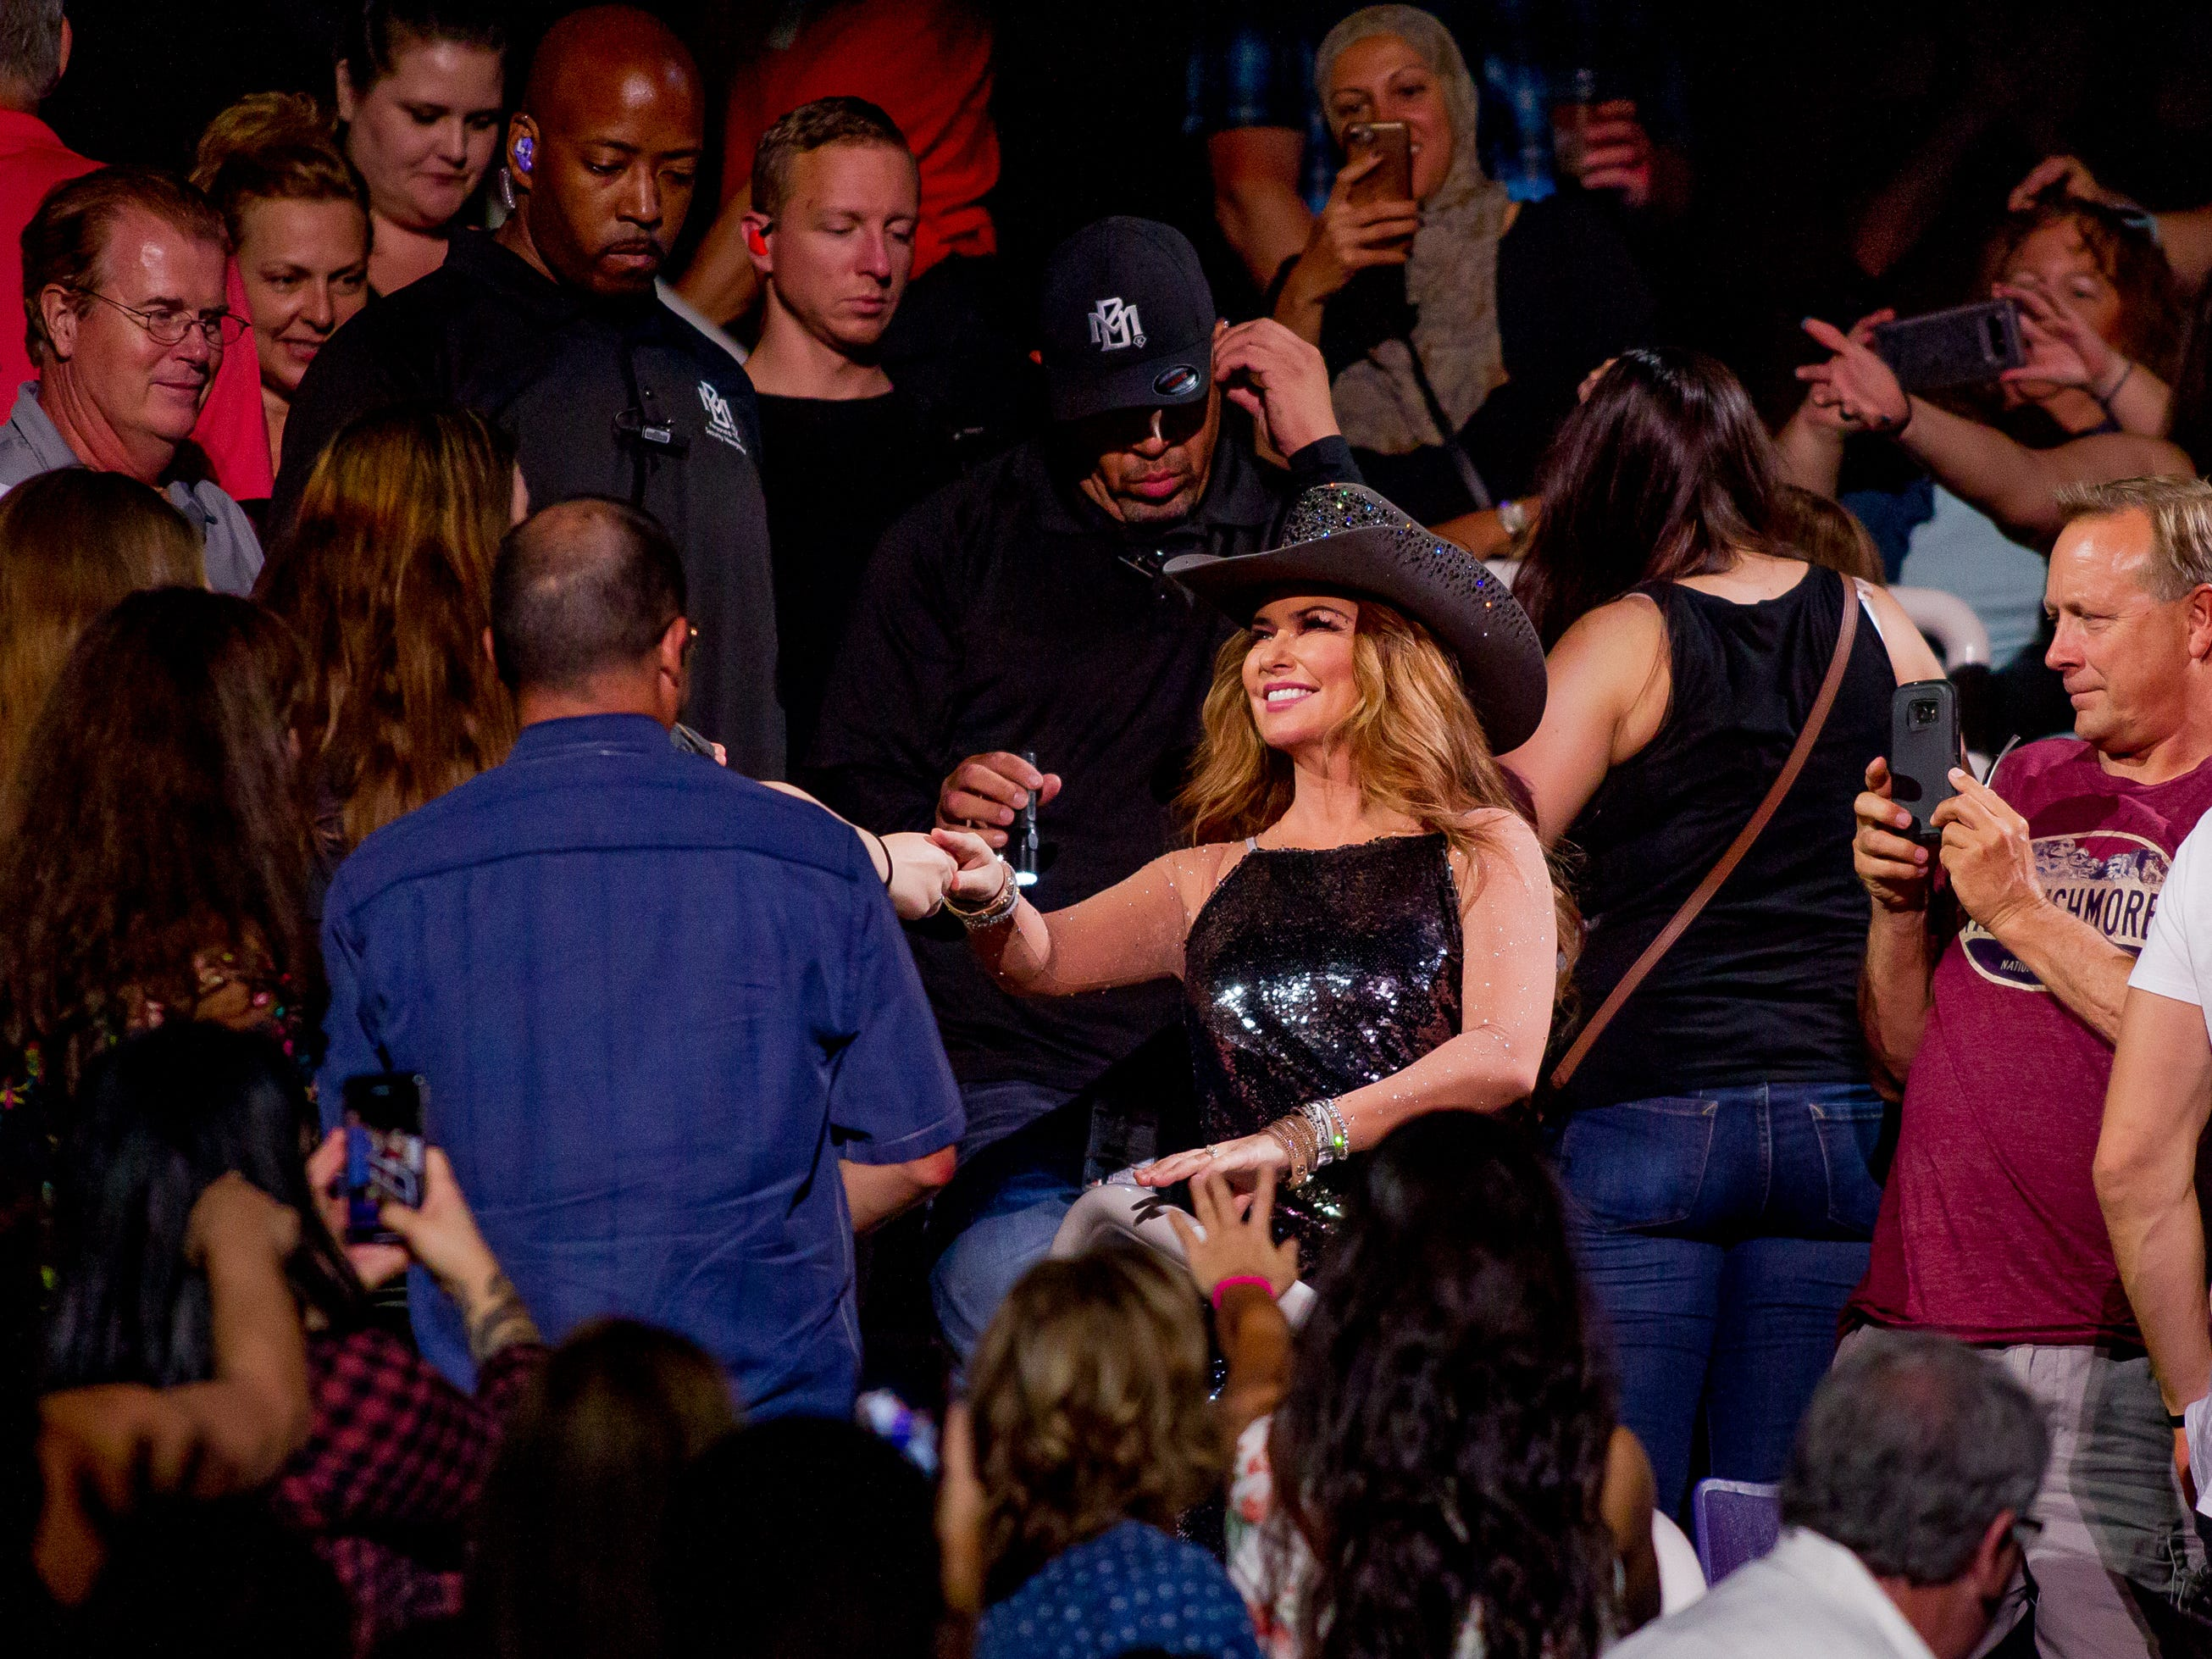 Shania Twain welcomes fans on July 30, 2018, during the Shania Twain: NOW concert at Talking Stick Resort Arena in Phoenix, Arizona.